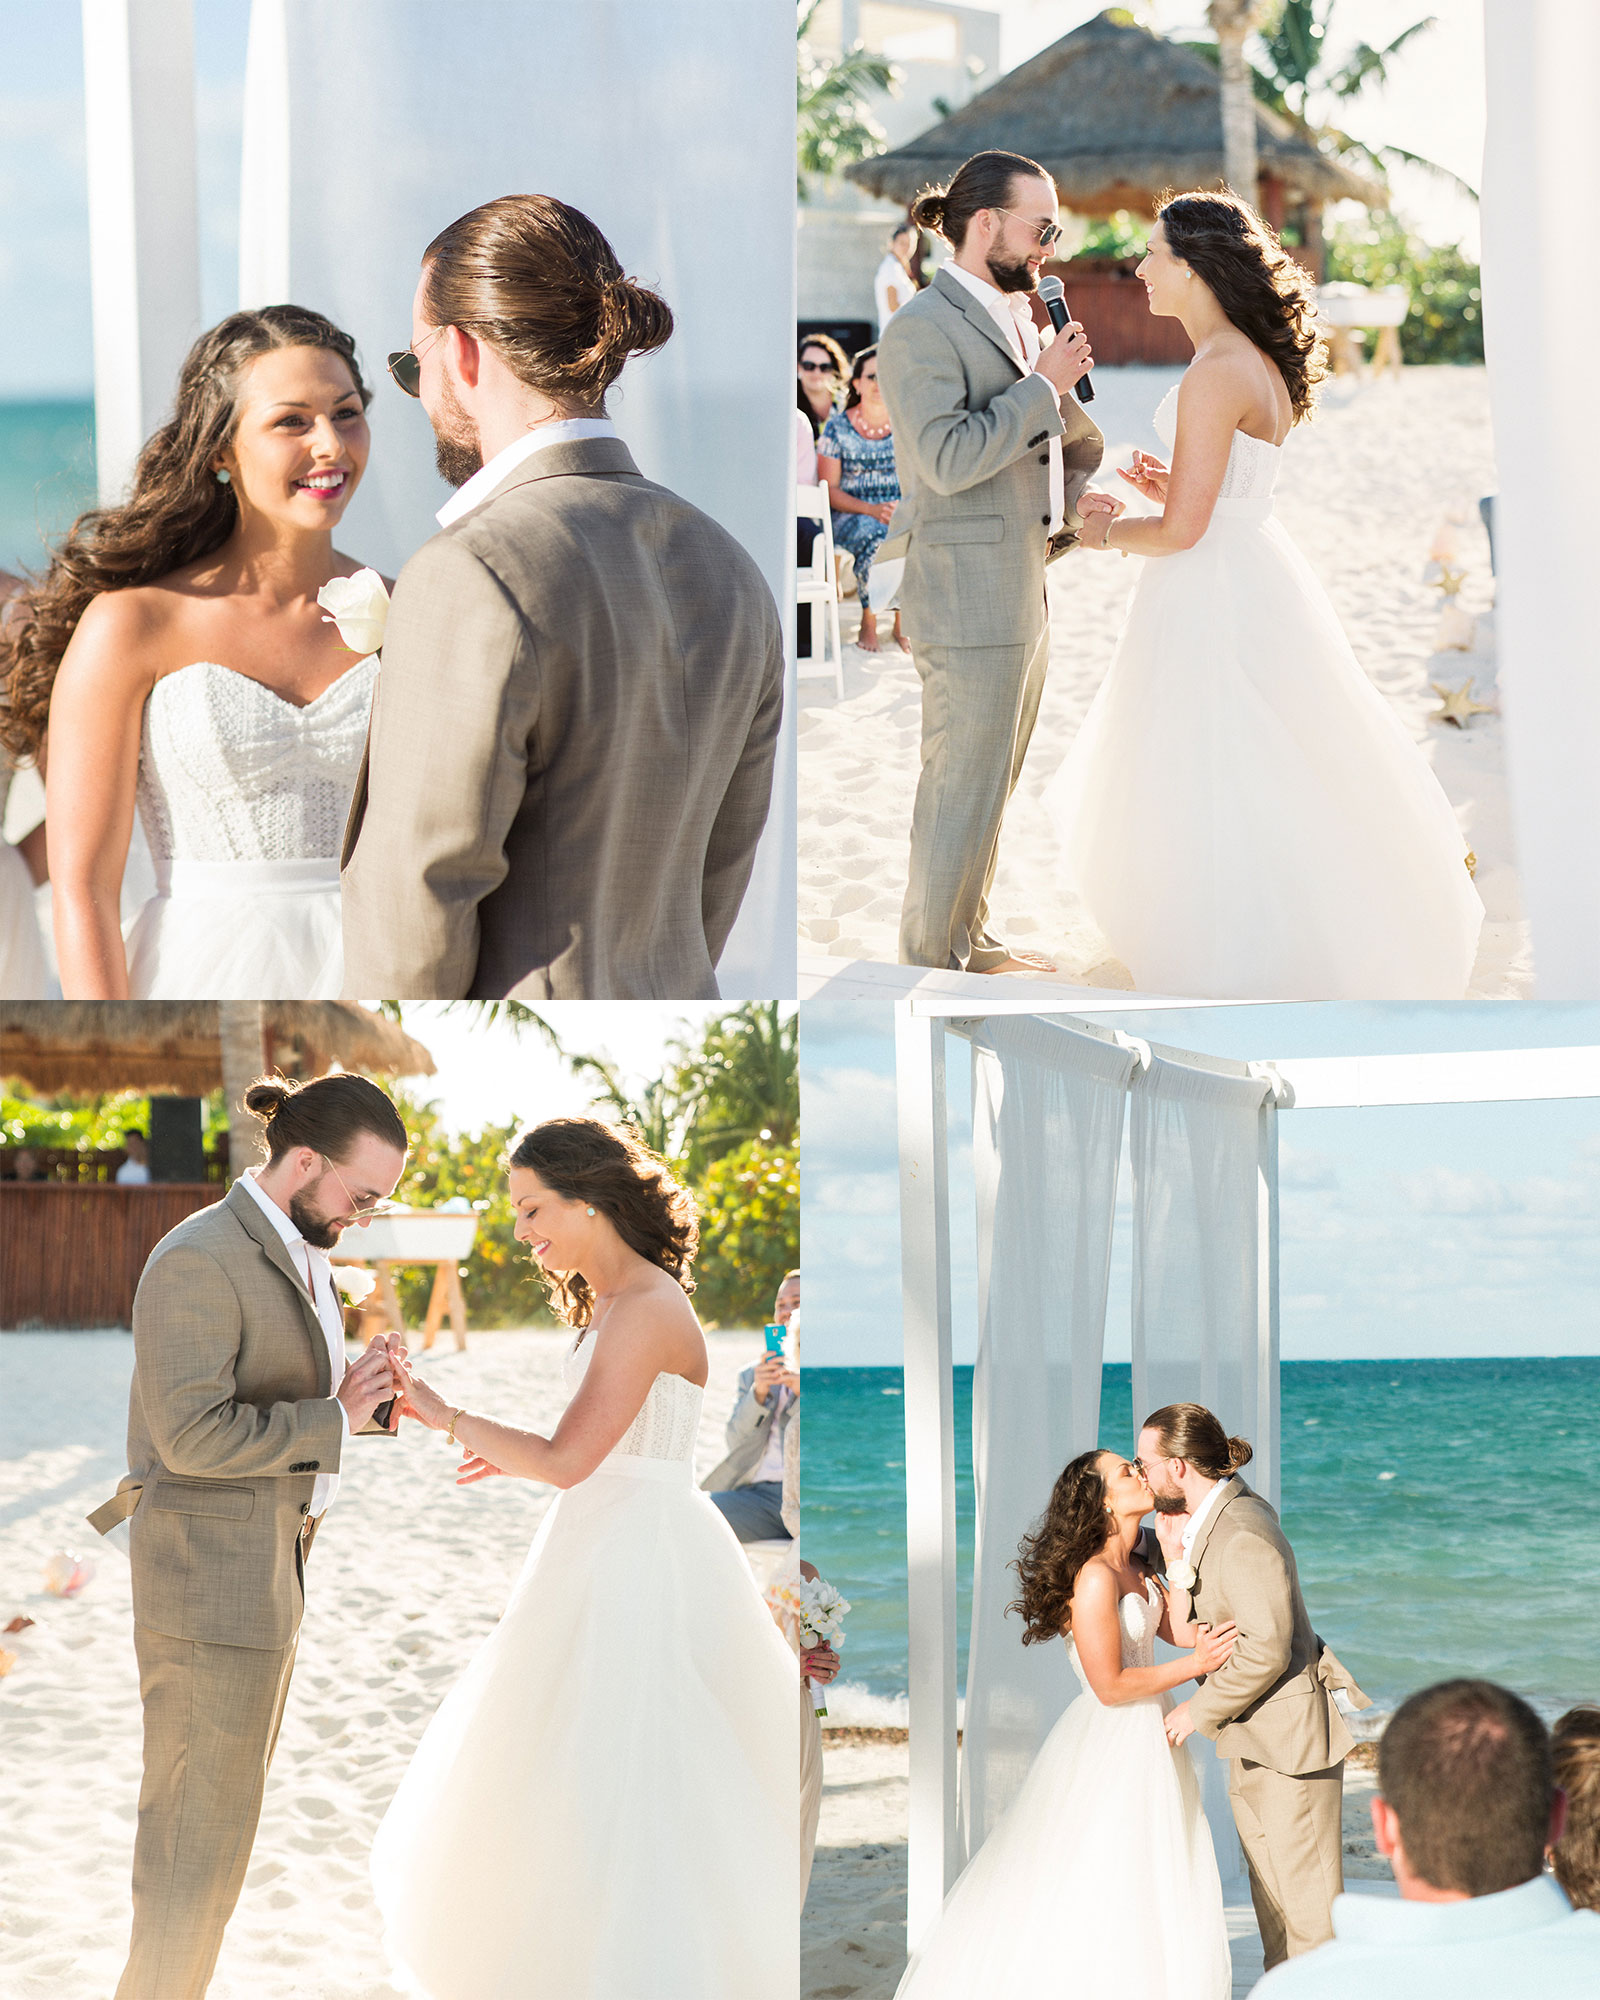 Destination wedding on the beach in Mexico, Bridal Separates, Watters Ashan skirt.